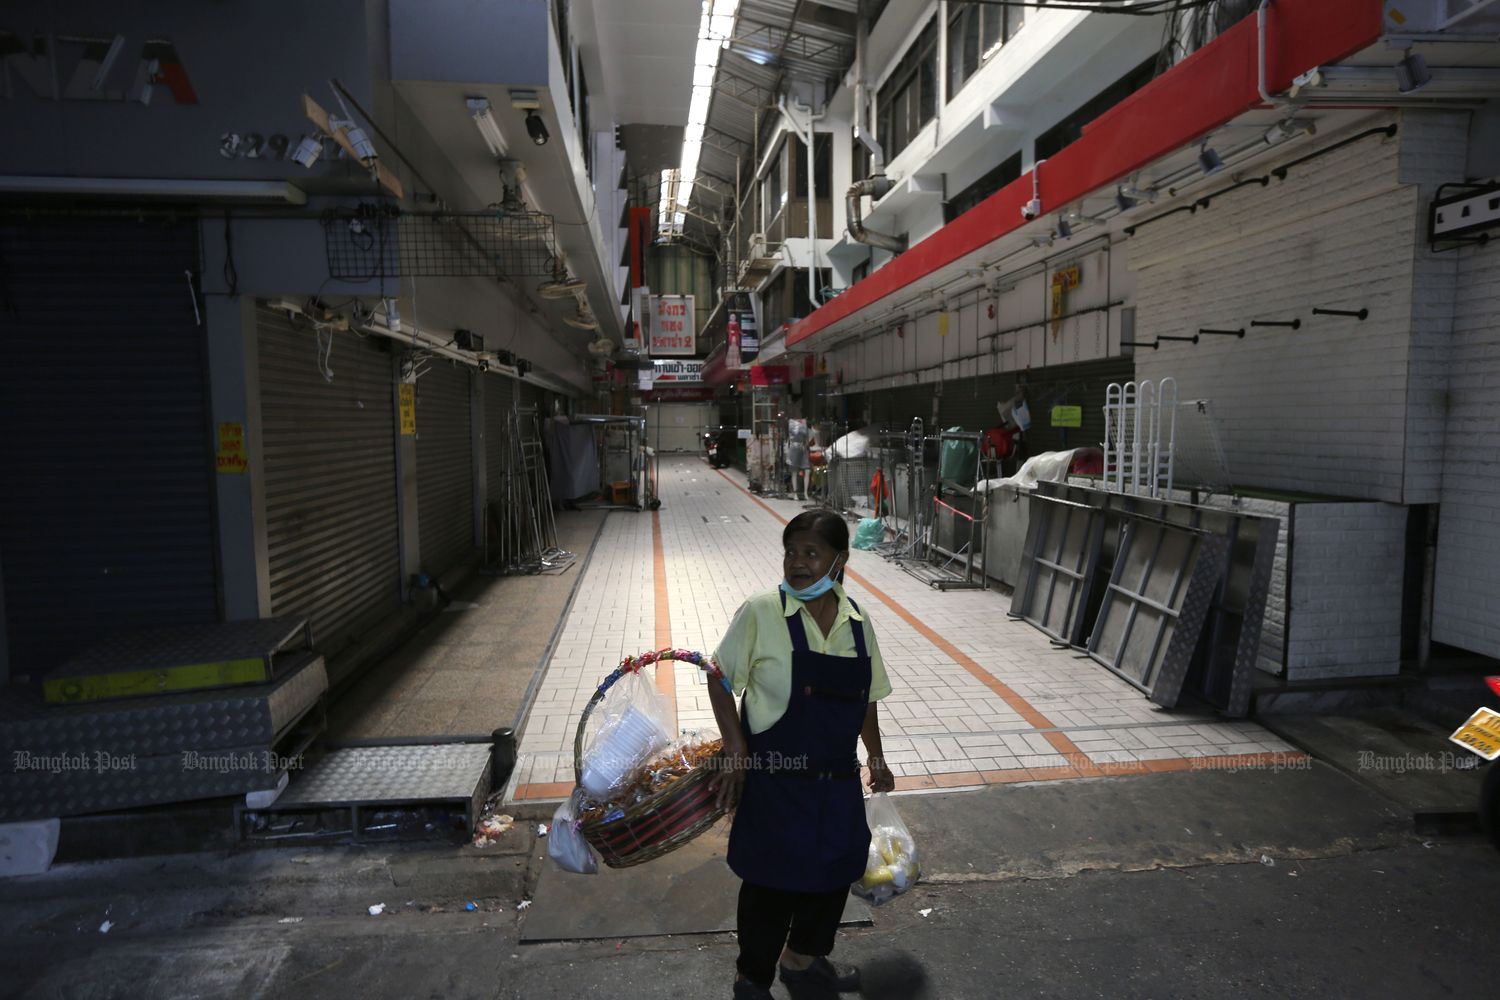 A woman stands before rows of closed shops in Bangkok on March 23. (Photo by Wichan Charoenkiatpakul)